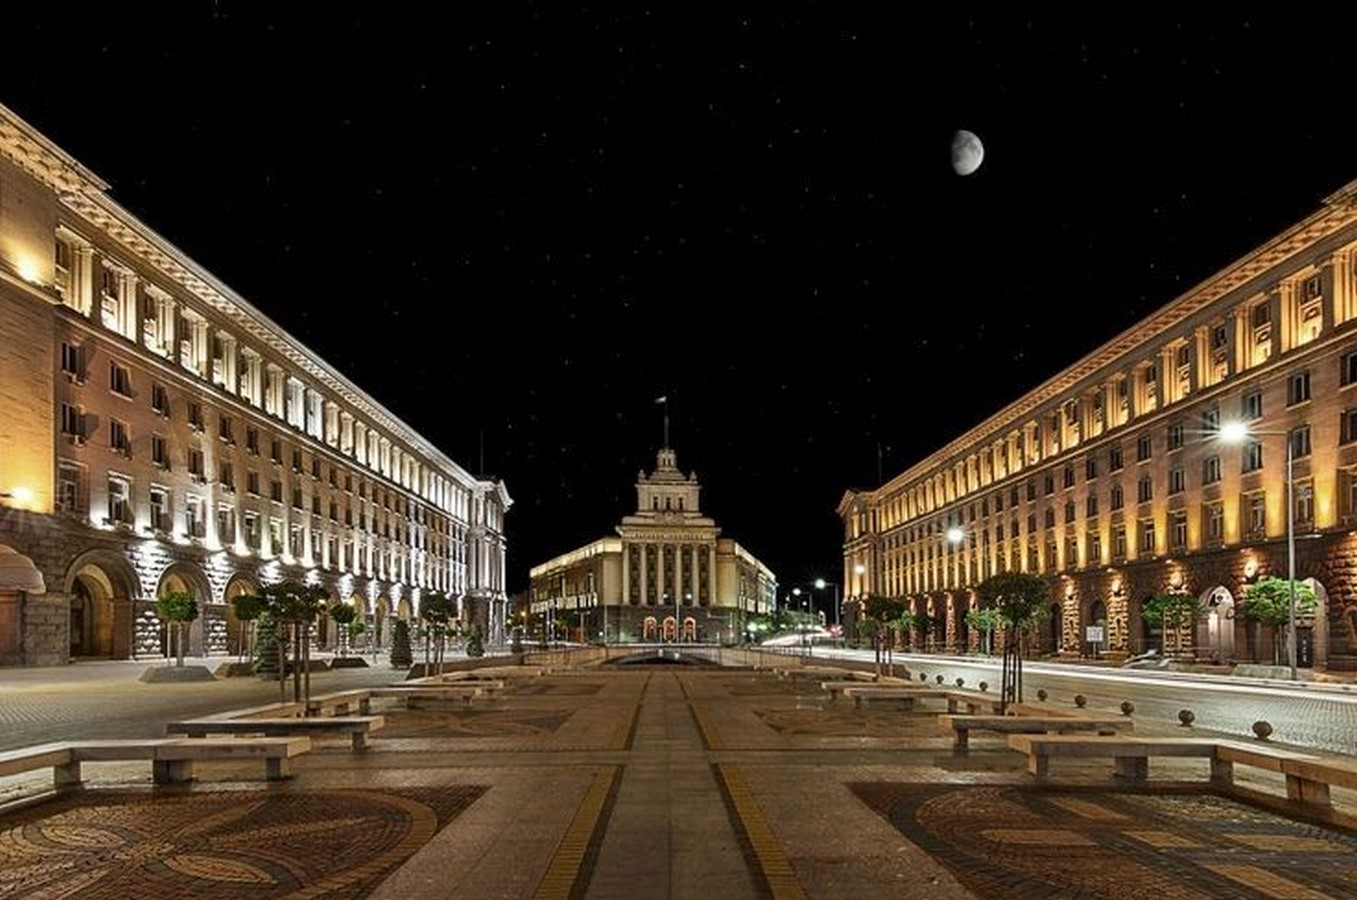 10 Things you did not know about the Stalinist architecture - Sheet2